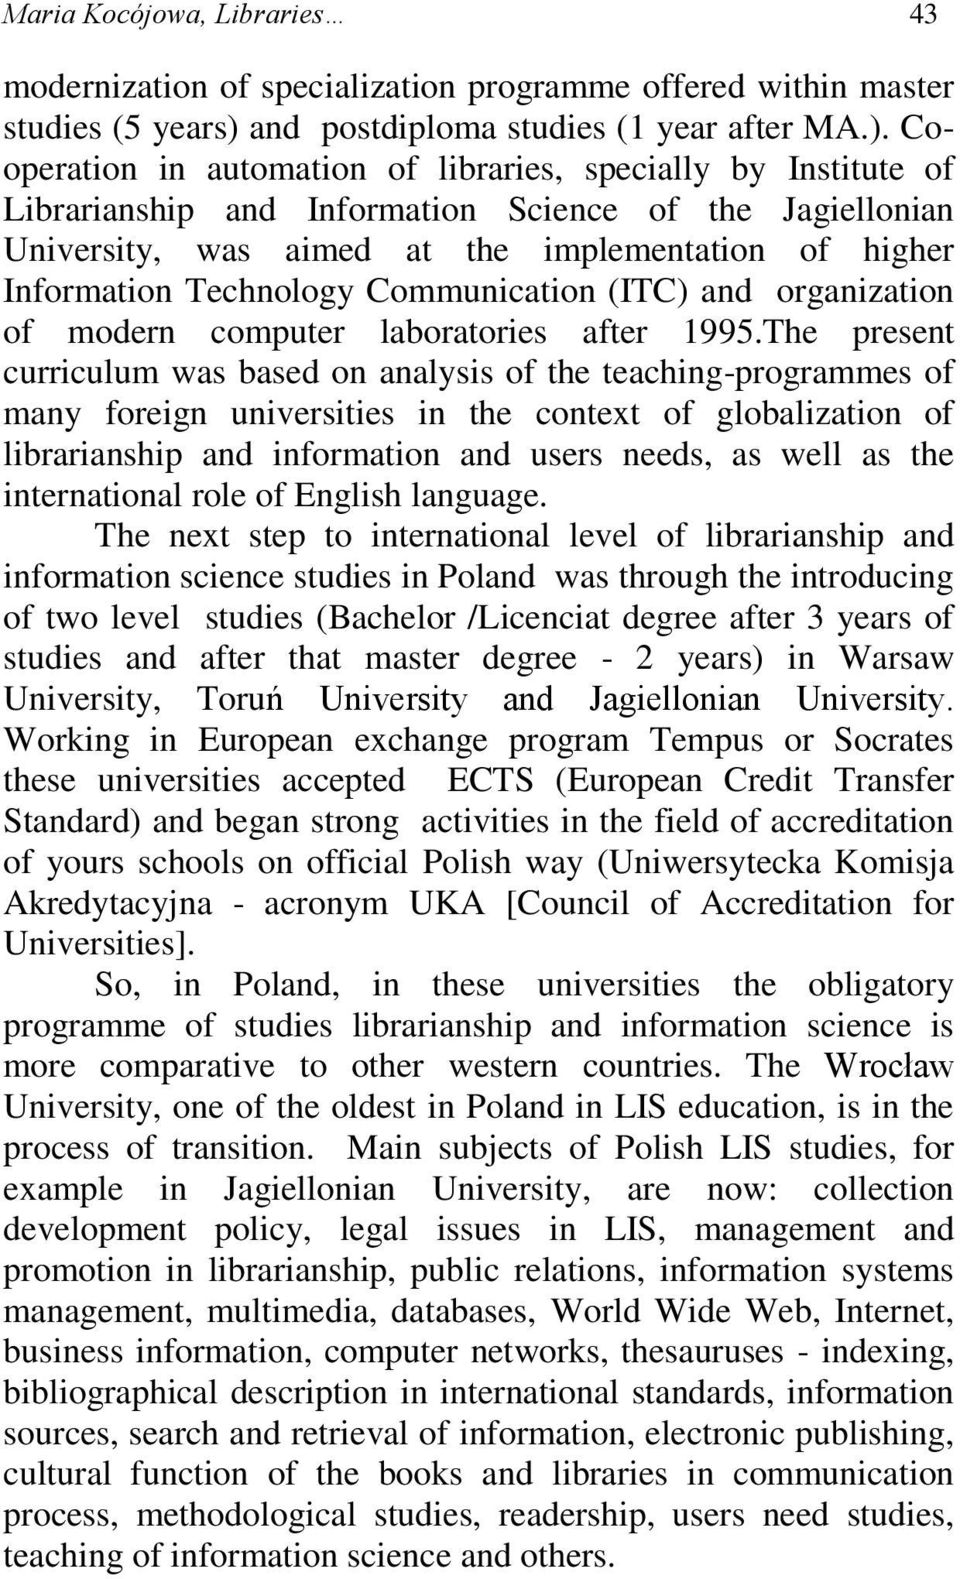 Cooperation in automation of libraries, specially by Institute of Librarianship and Information Science of the Jagiellonian University, was aimed at the implementation of higher Information